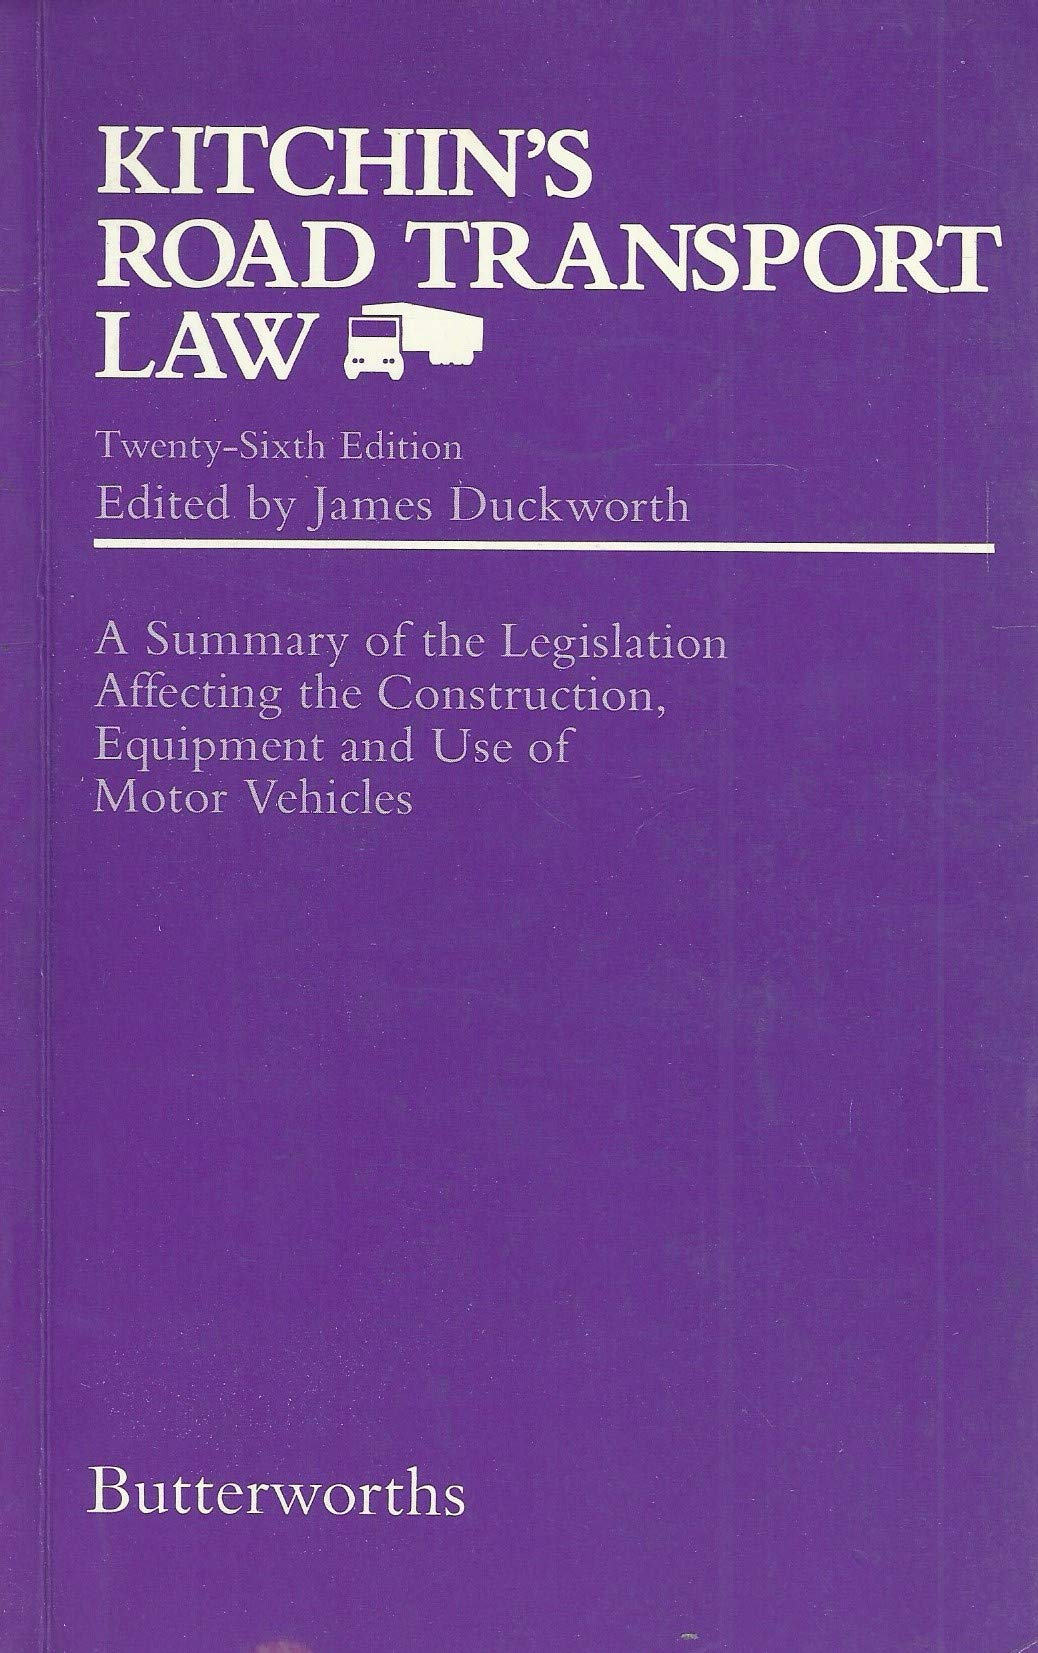 Kitchin's Road Transport Law: A Summary of the Legislation Affecting the Construction, Equipment and Use of Motor Vehicles